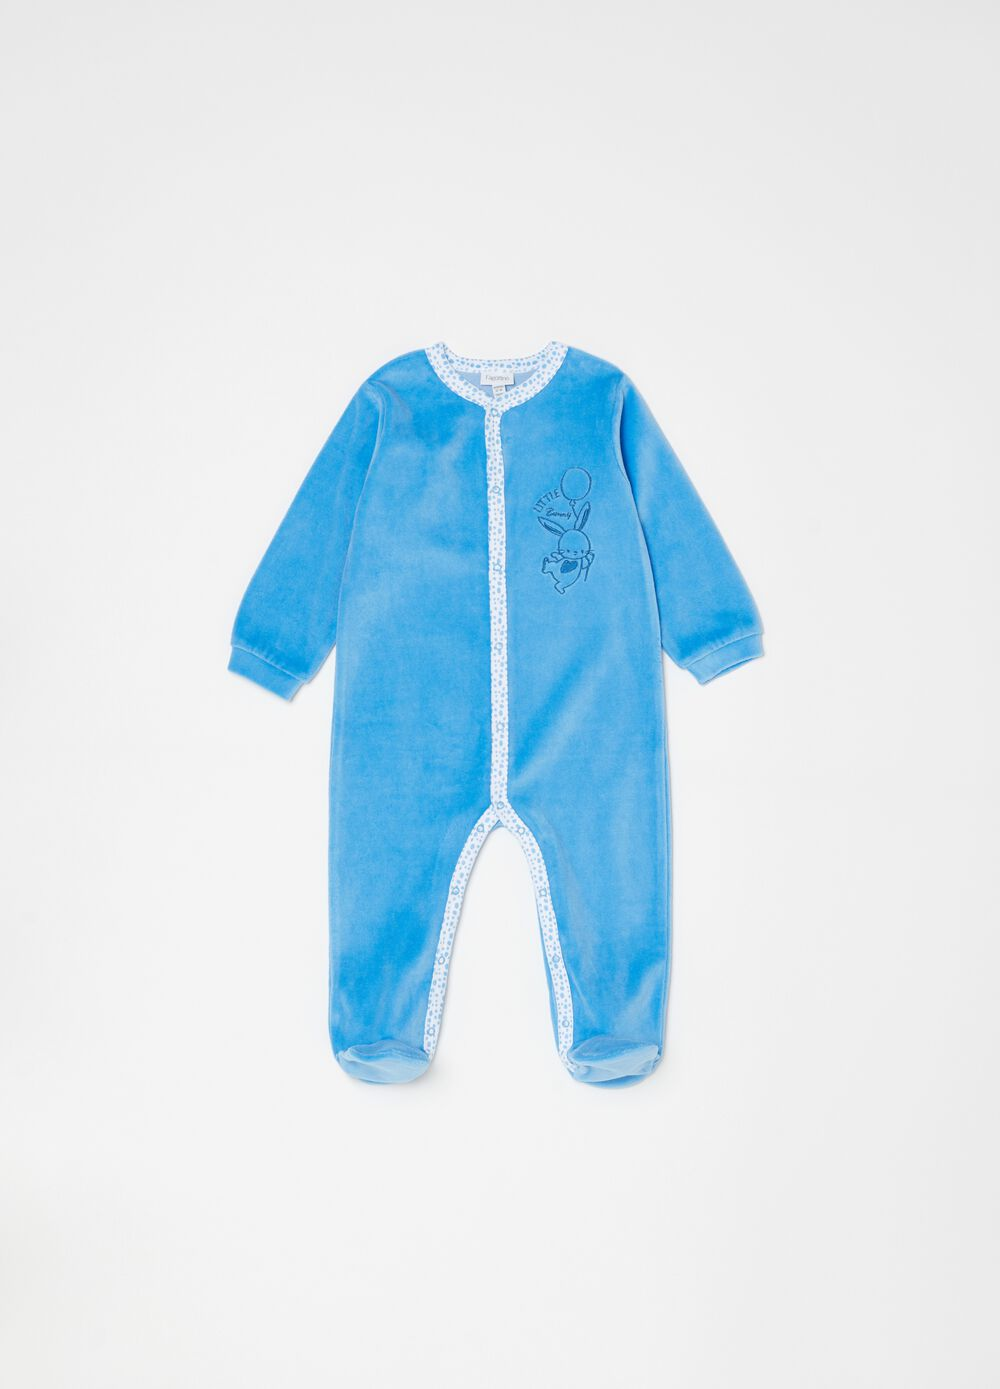 Onesie with feet, long sleeves and embroidery